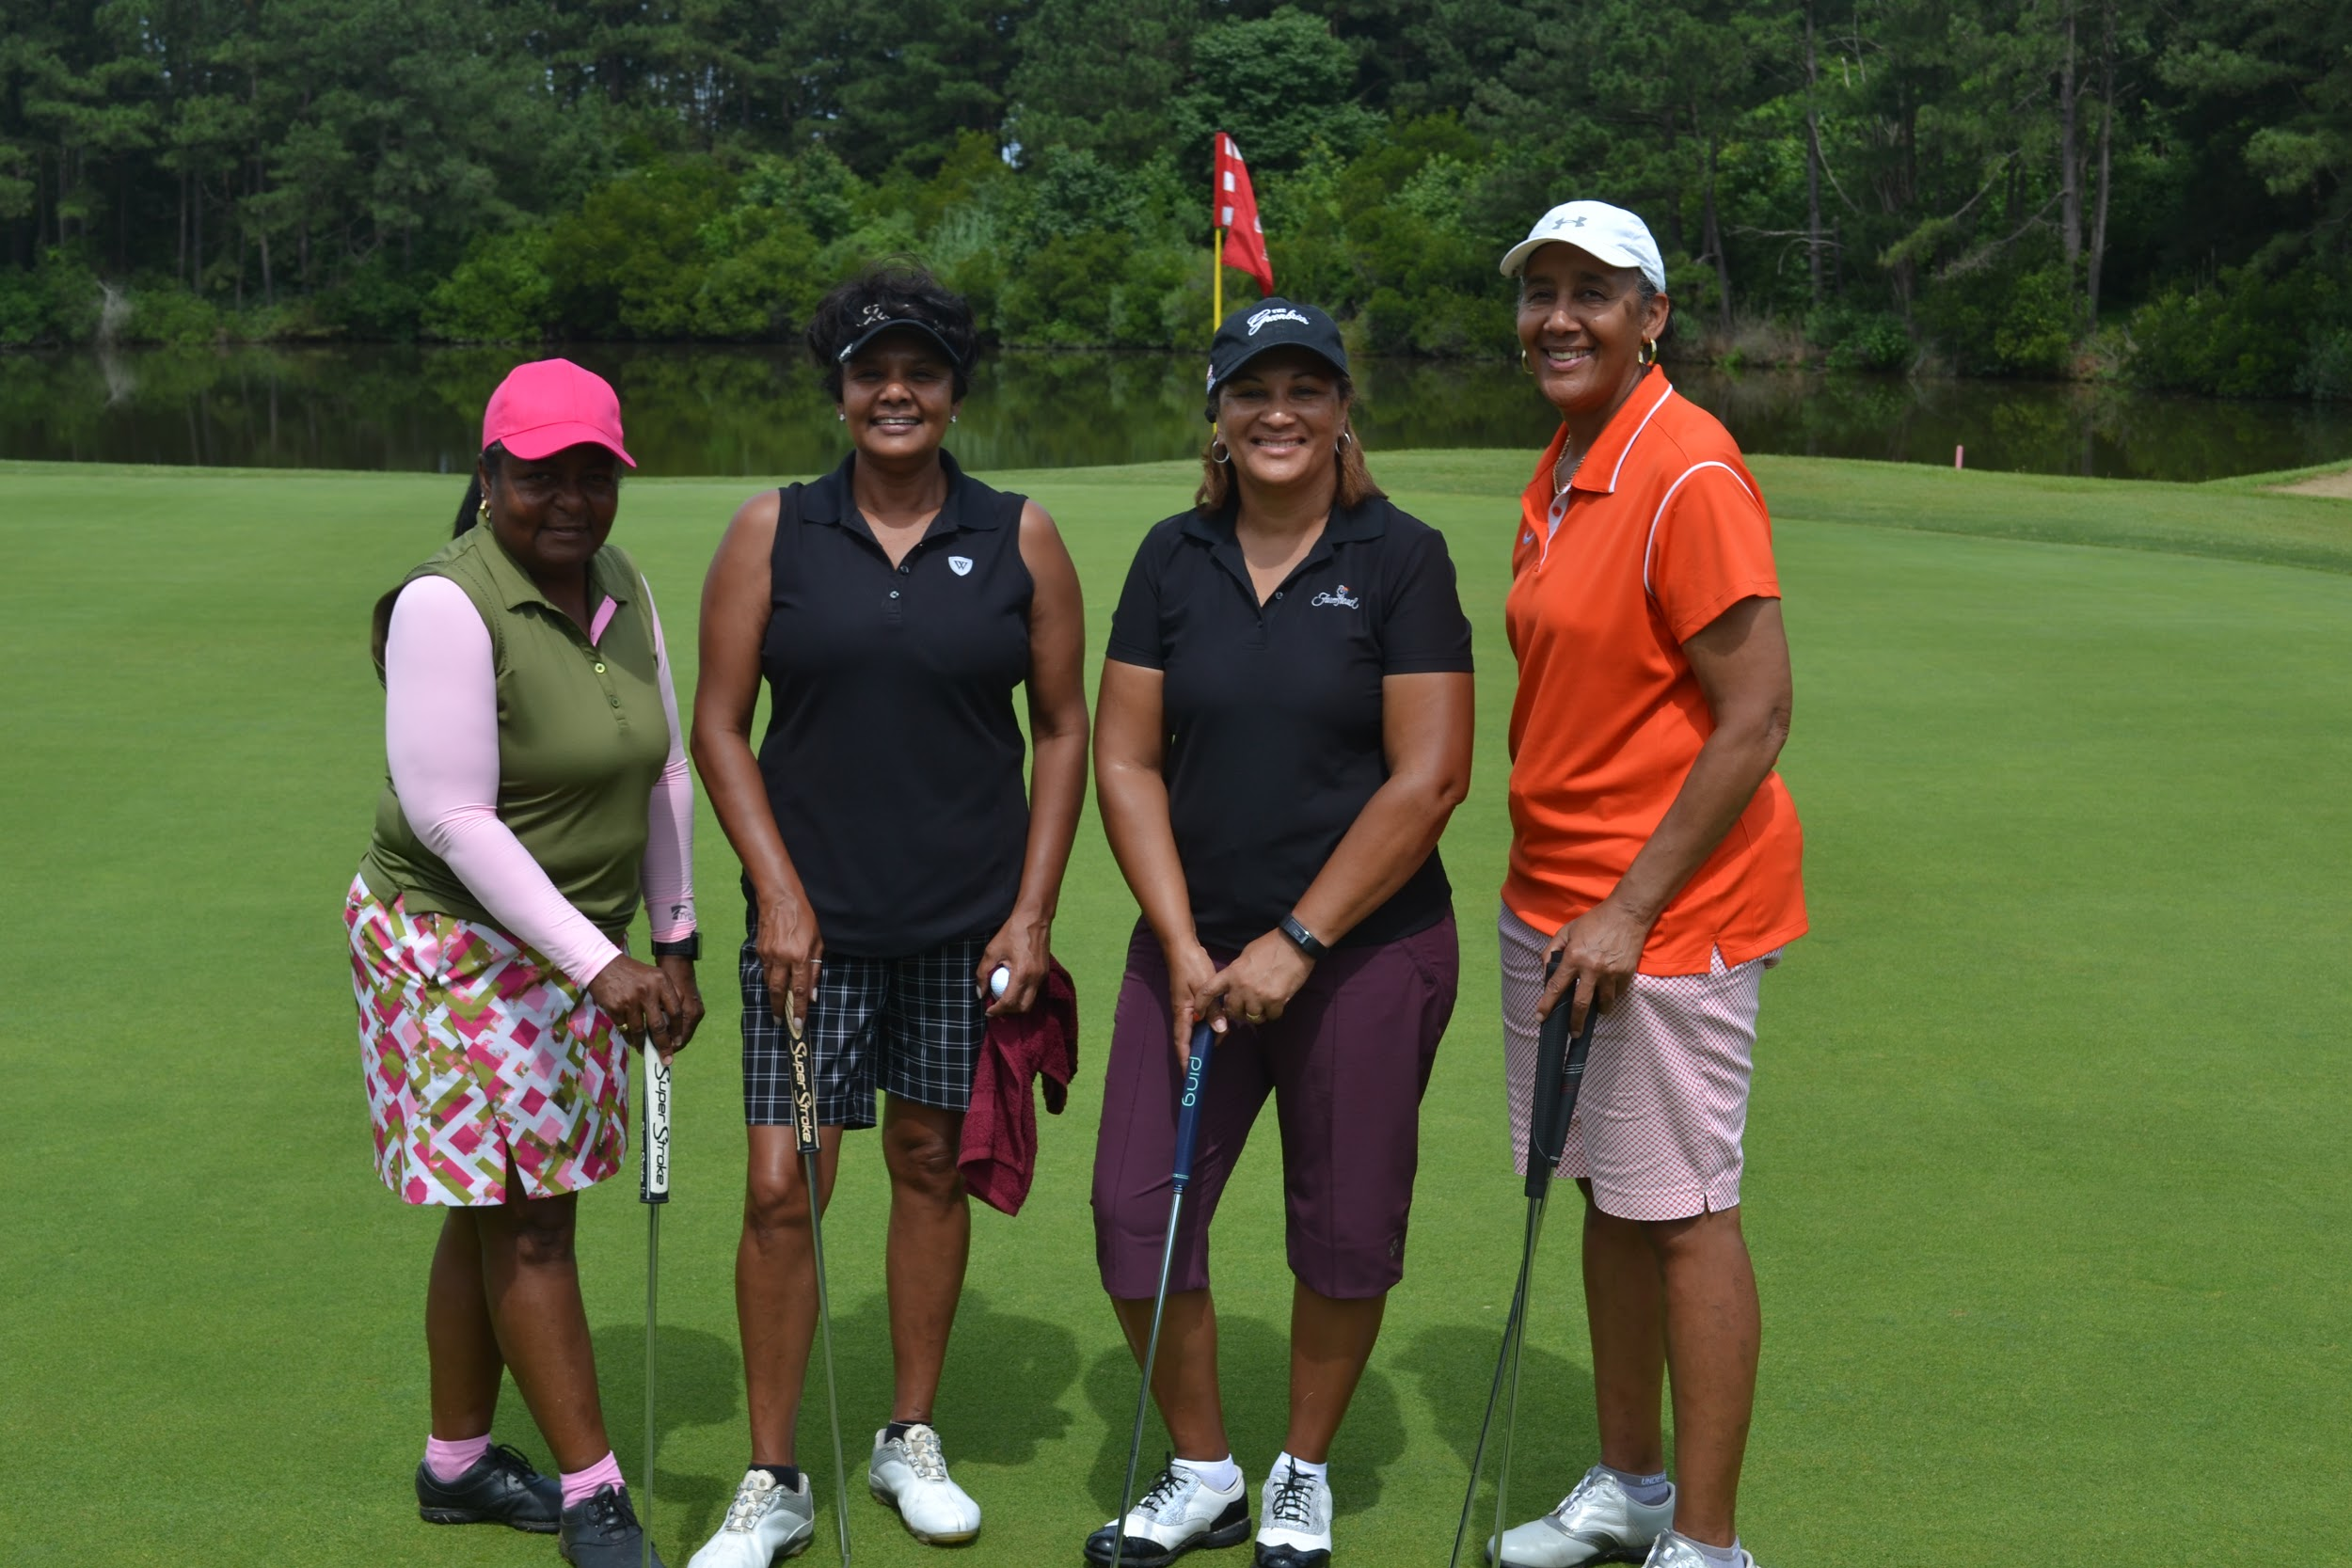 Women golfers on the green at CRMC Foundation's 2019 Southern Maryland Women's Golf Invitational